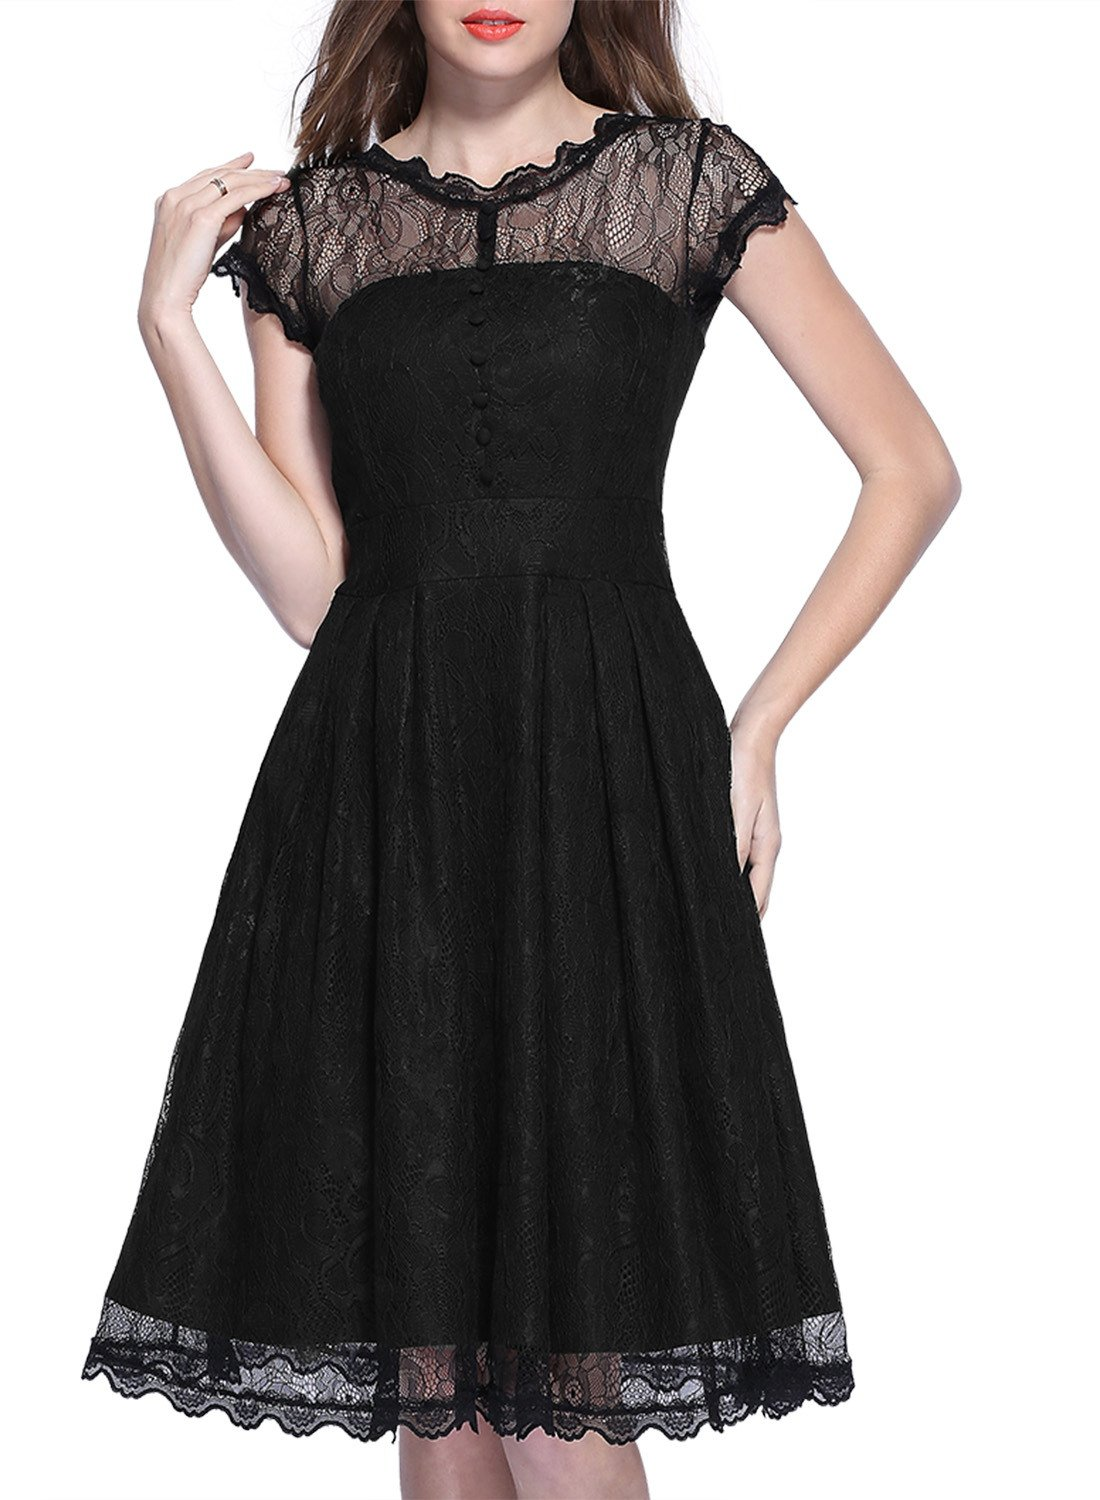 Miusol Womens Retro Floral Lace Cap Sleeve Vintage Swing Bridesmaid Dress, XX-Large, Black